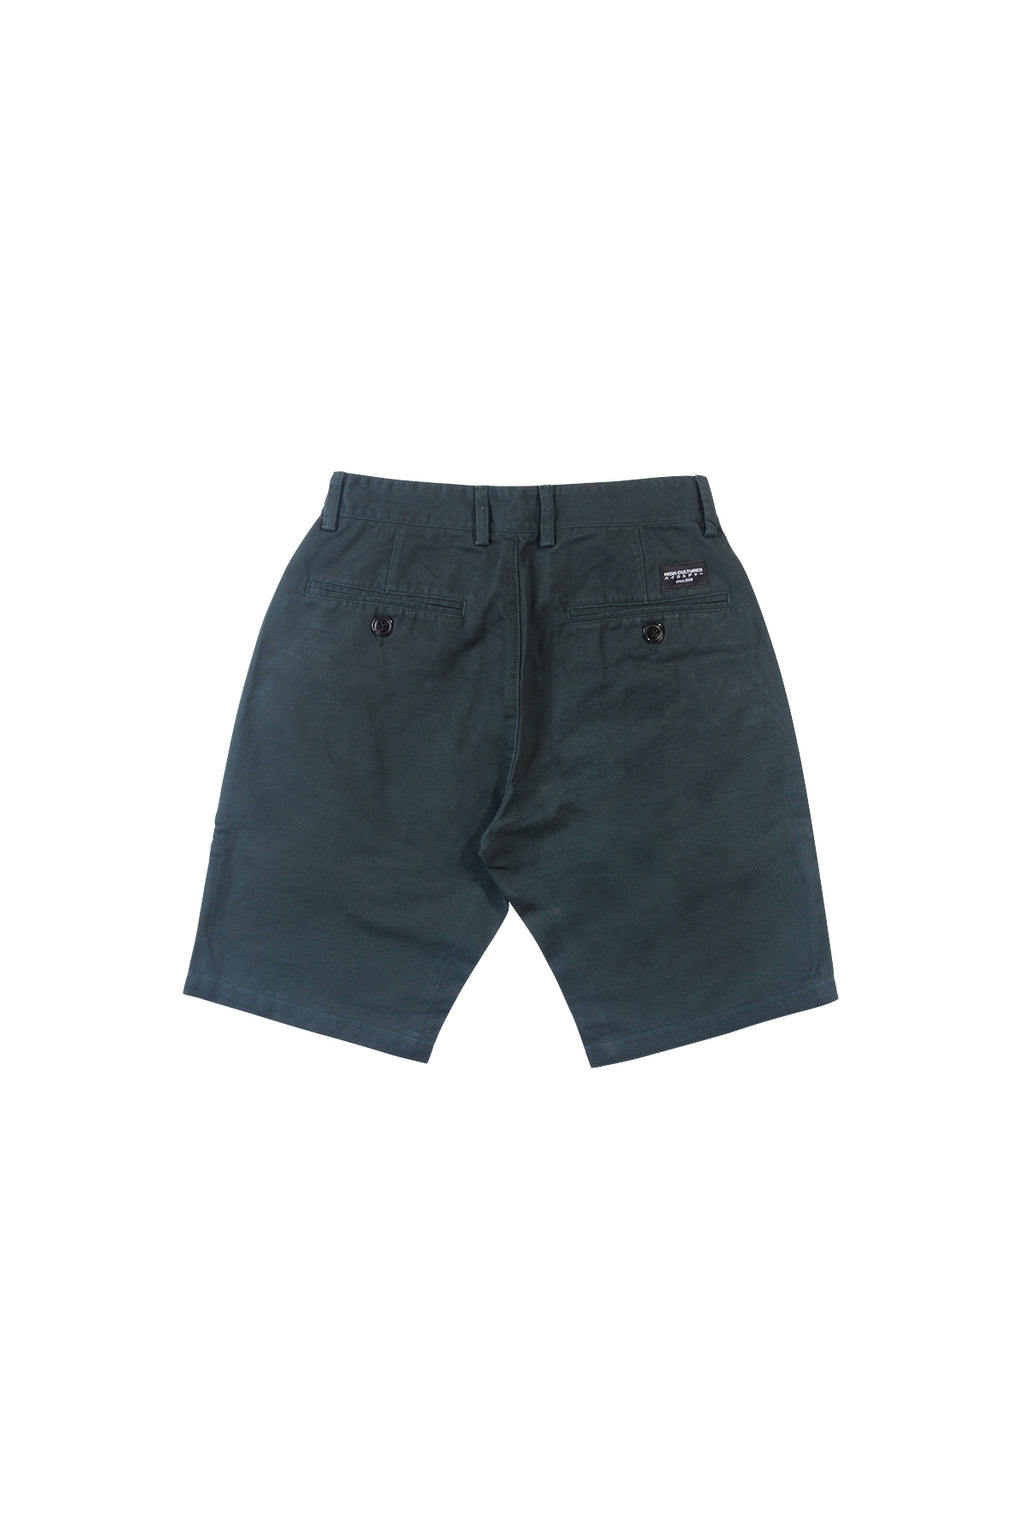 STANDARD-FIT CHINO SHORT PANT | TURQUOISE - 94